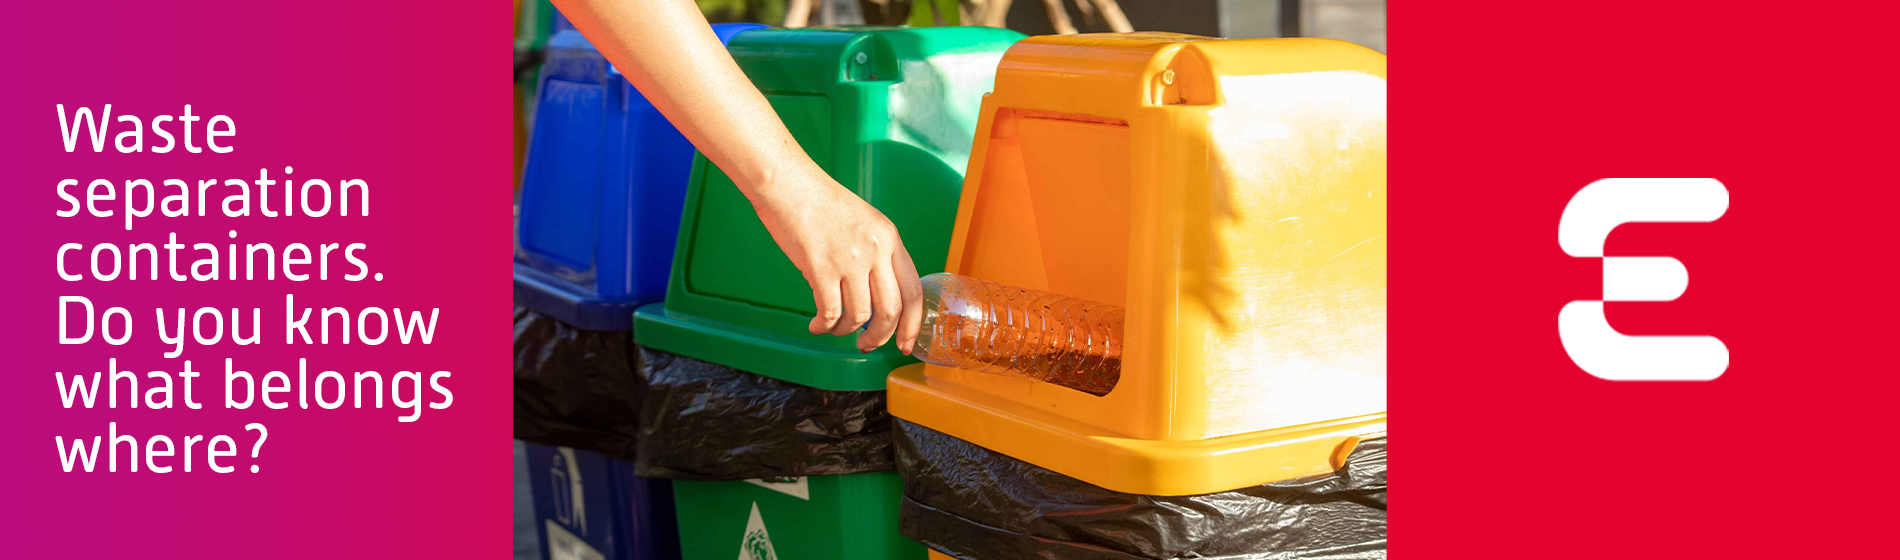 Waste separation containers. Do you know what belongs where?